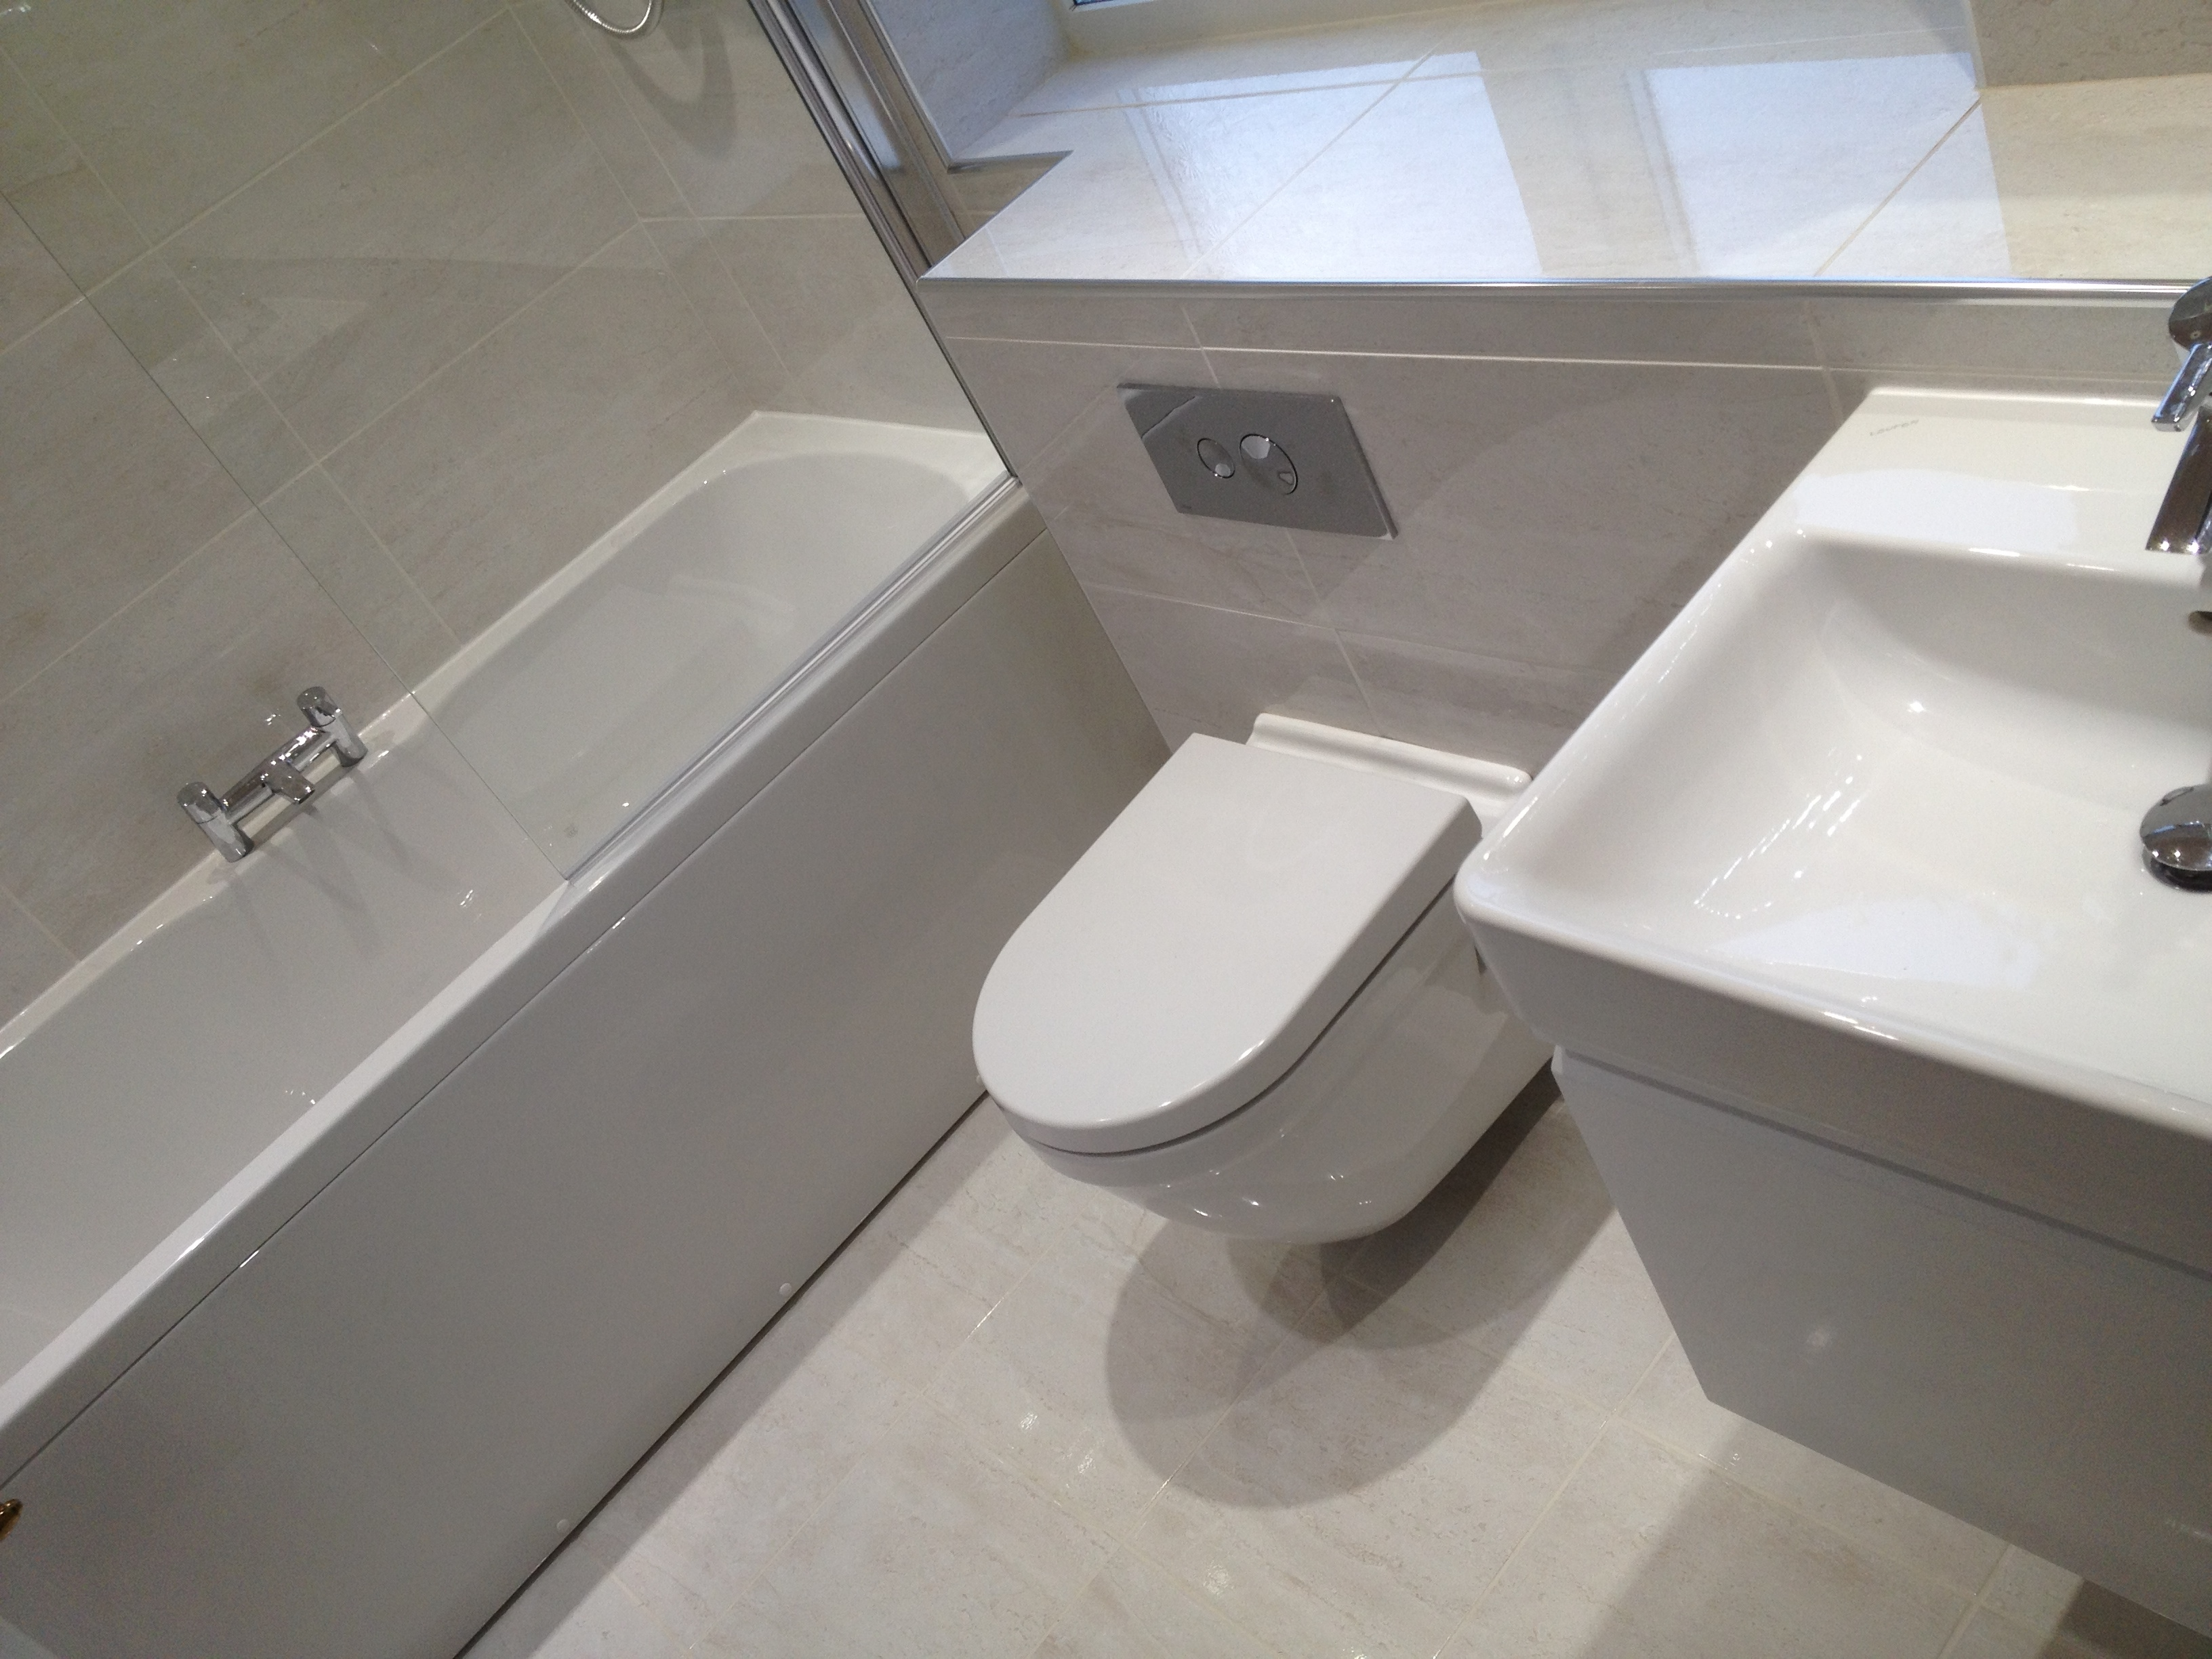 Fully Tiled Bathroom Bathroom Installation Archives Paul Chaplow Plumbing And Heating Ltd